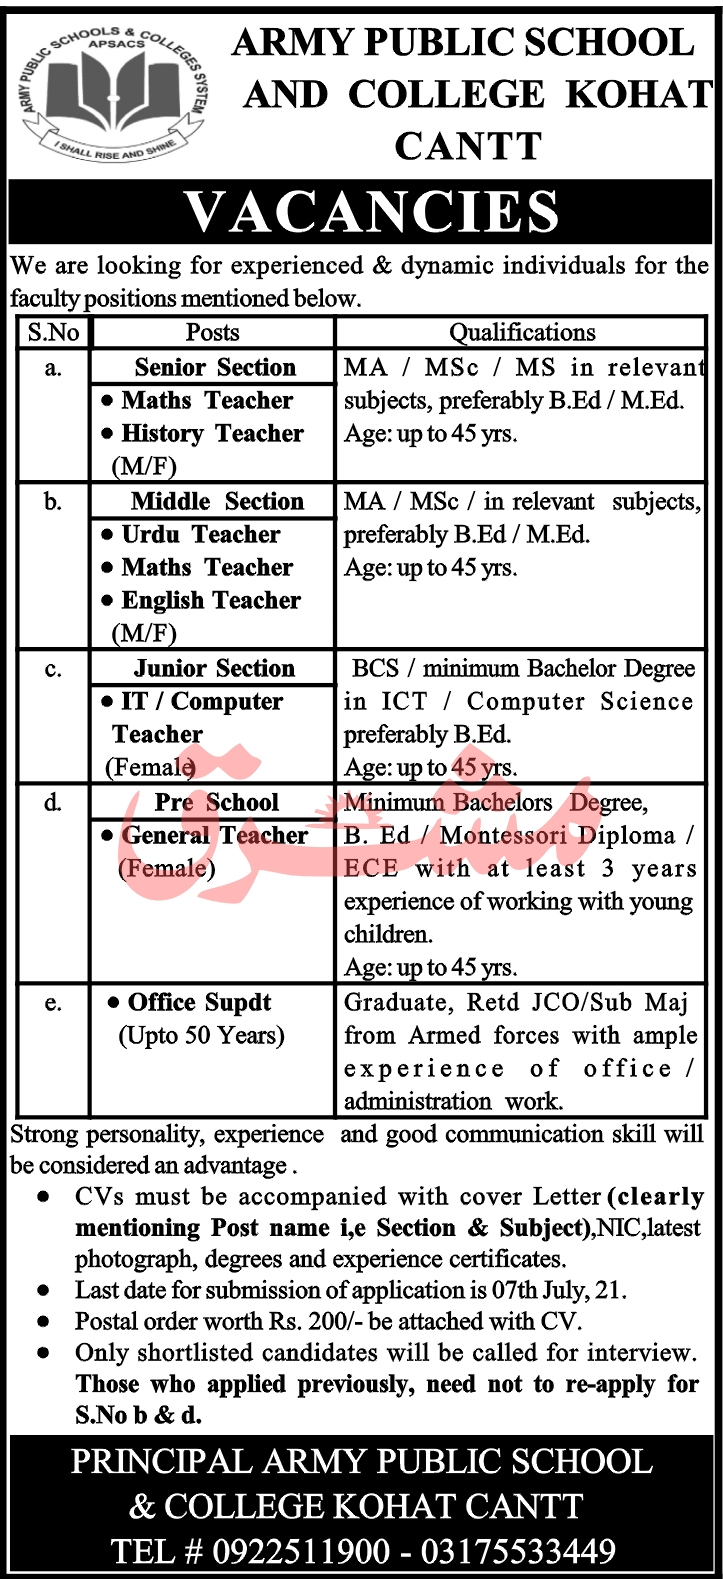 Army Public School & College Kohat Cantt Jobs